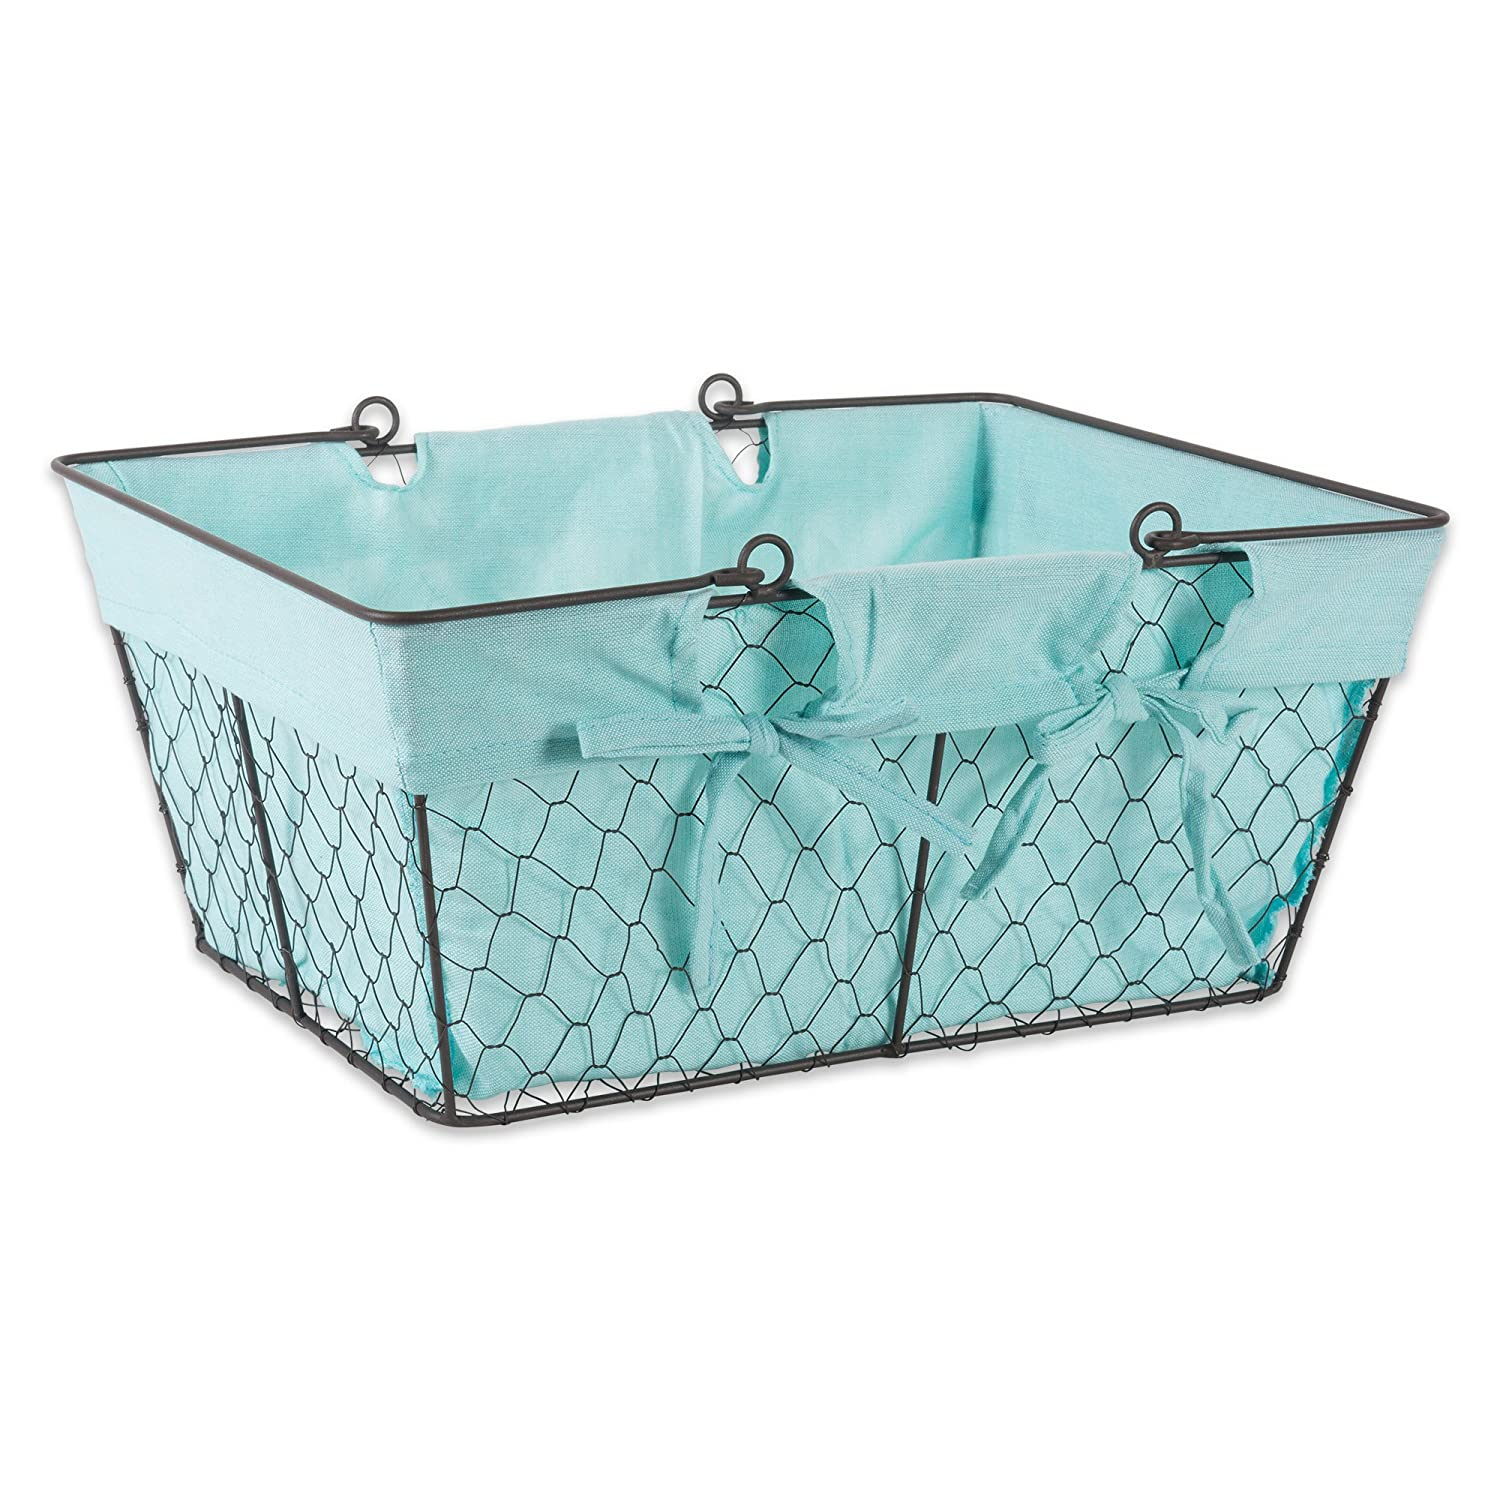 DII Farmhouse Vintage Food Safe Metal Chicken Wire Storage Baskets with Removable Fabric Liner for Home Décor or Kitchen Use, Set of 2, Aqua Home Traditions Z01536